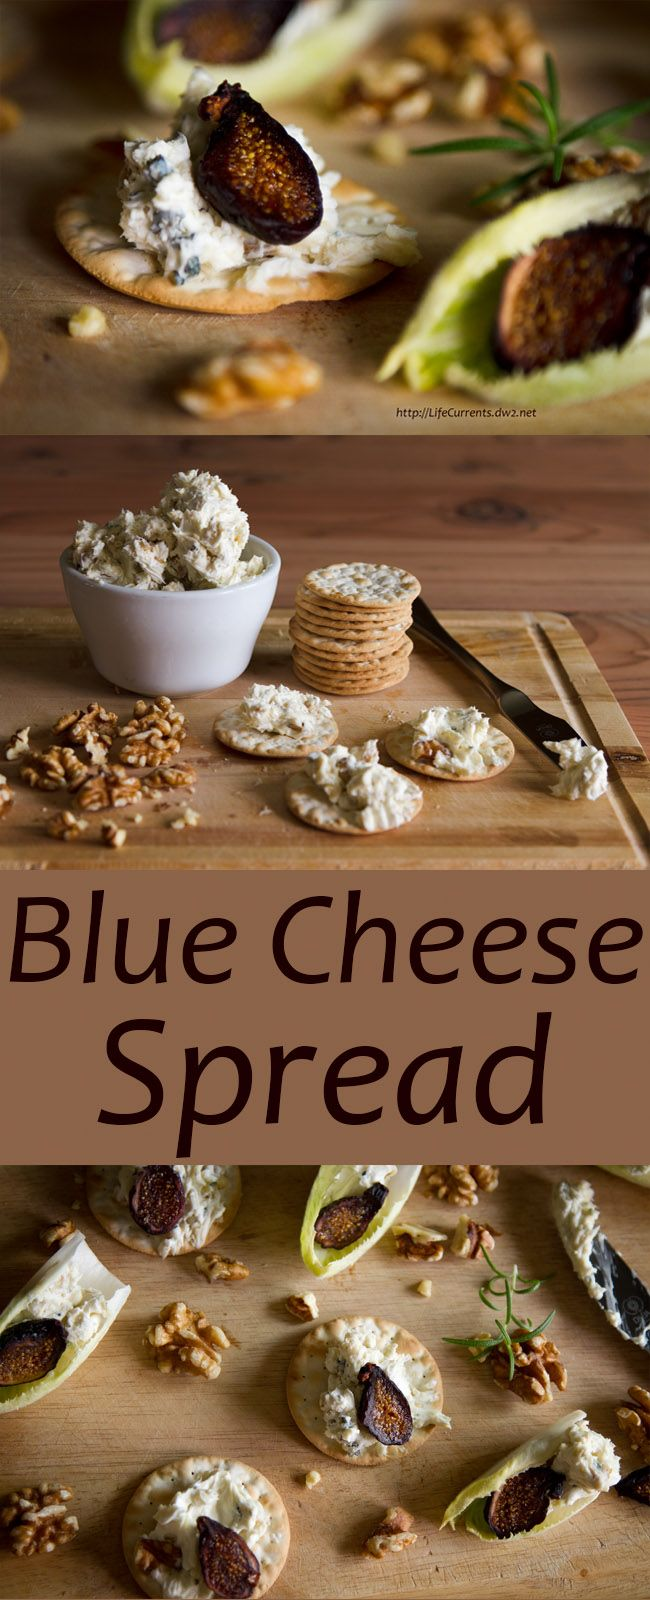 Blue Cheese Spread by Life Currents is super yummy and really easy to whip together, your guests will think you're a genius. Serve it with crackers, endive, figs, honey, whatever you can come up with!